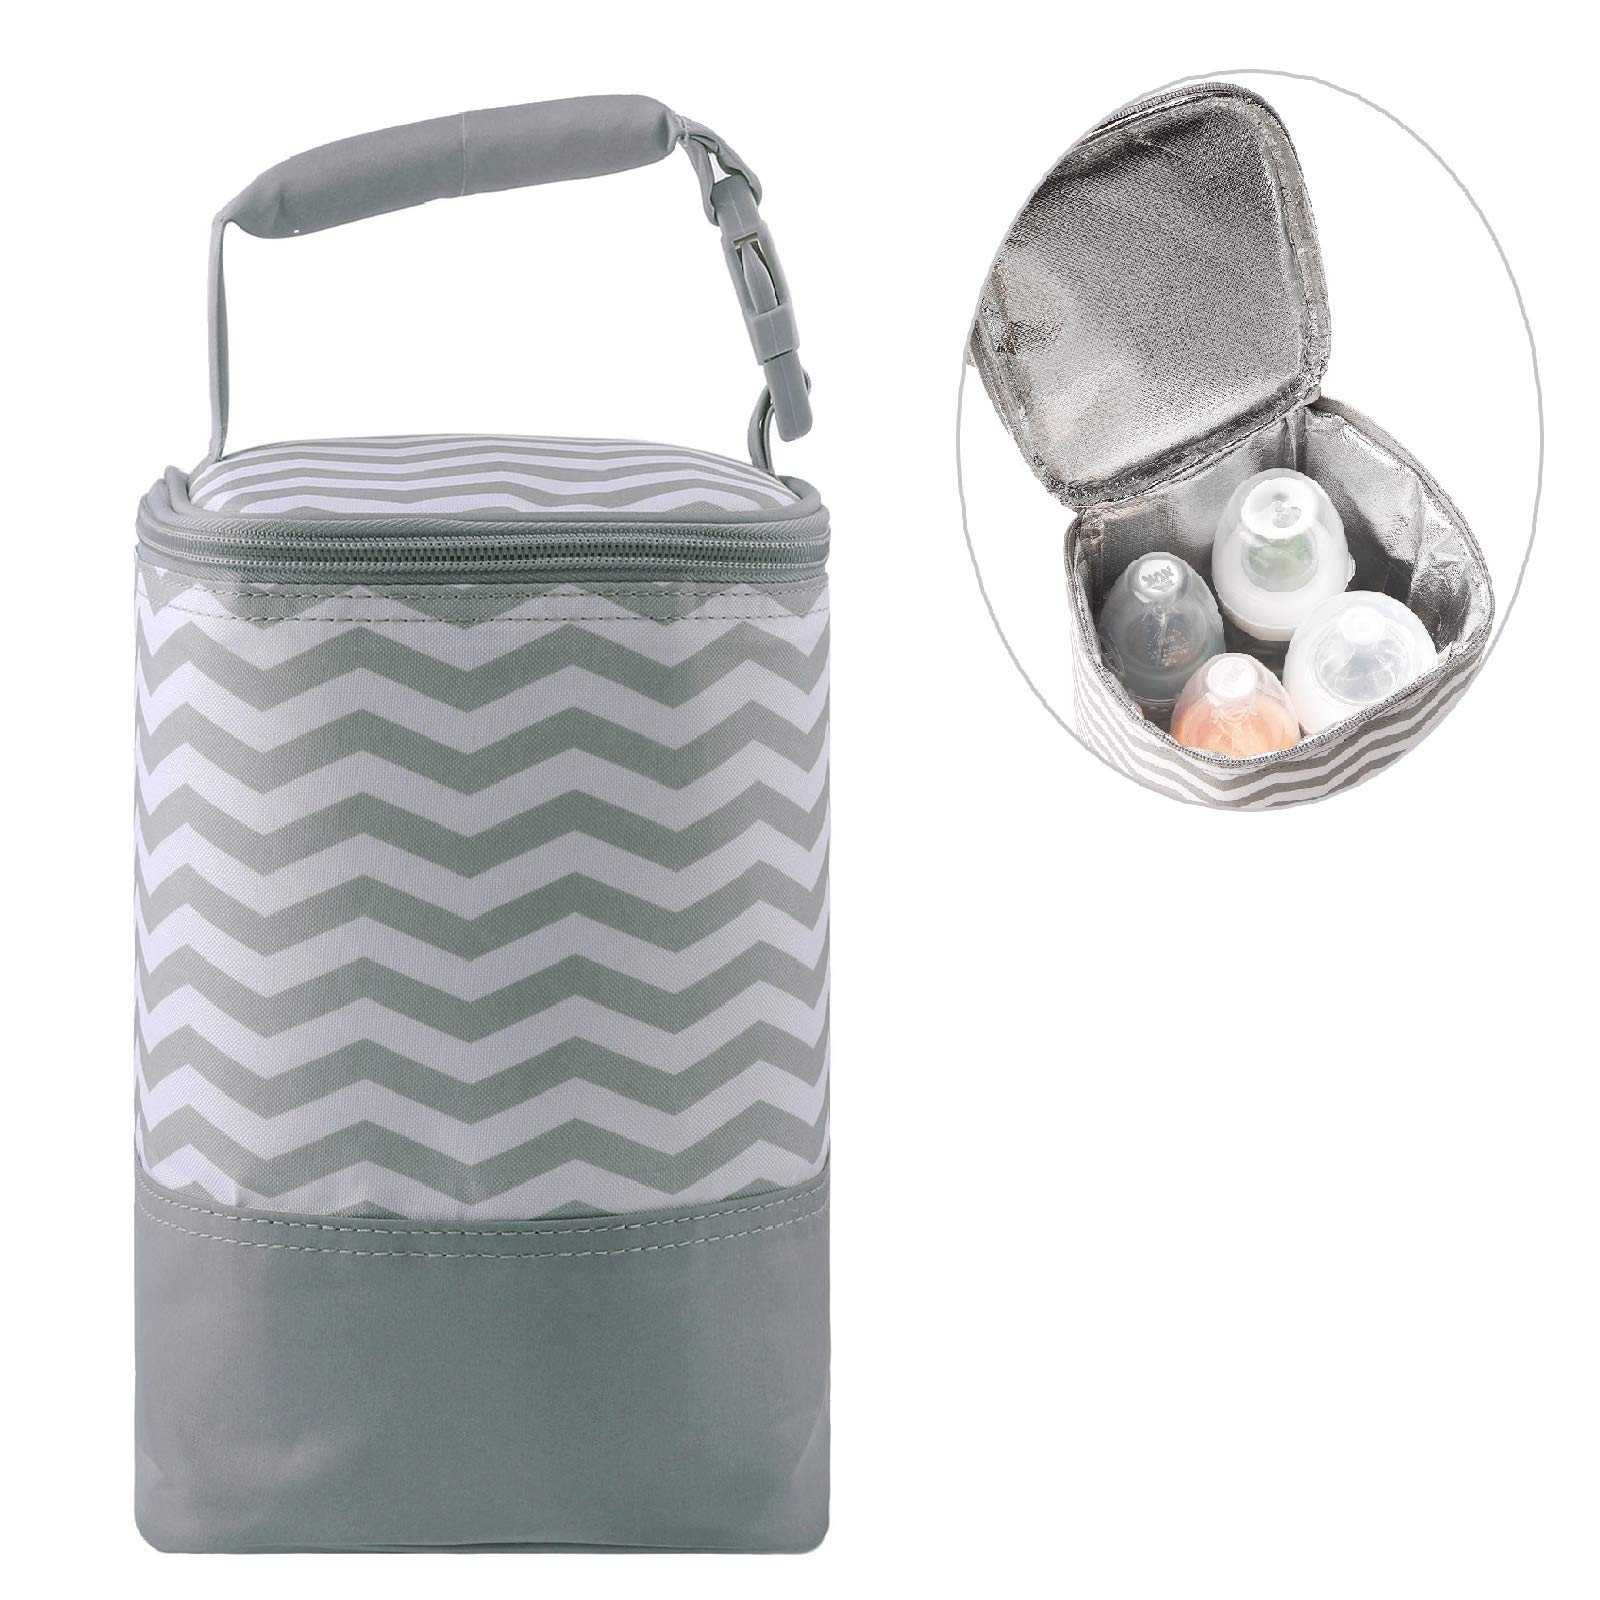 Insulated Baby Bottle Bag for Daycare - MBJERRY Size Upgrade Breastmilk Cooler Bag Baby Bottle Tote Bags, Easily Attaches to Stroller(Gray Wavy Stripes,Fits up to 4 Large 8 Oz. Bottles)